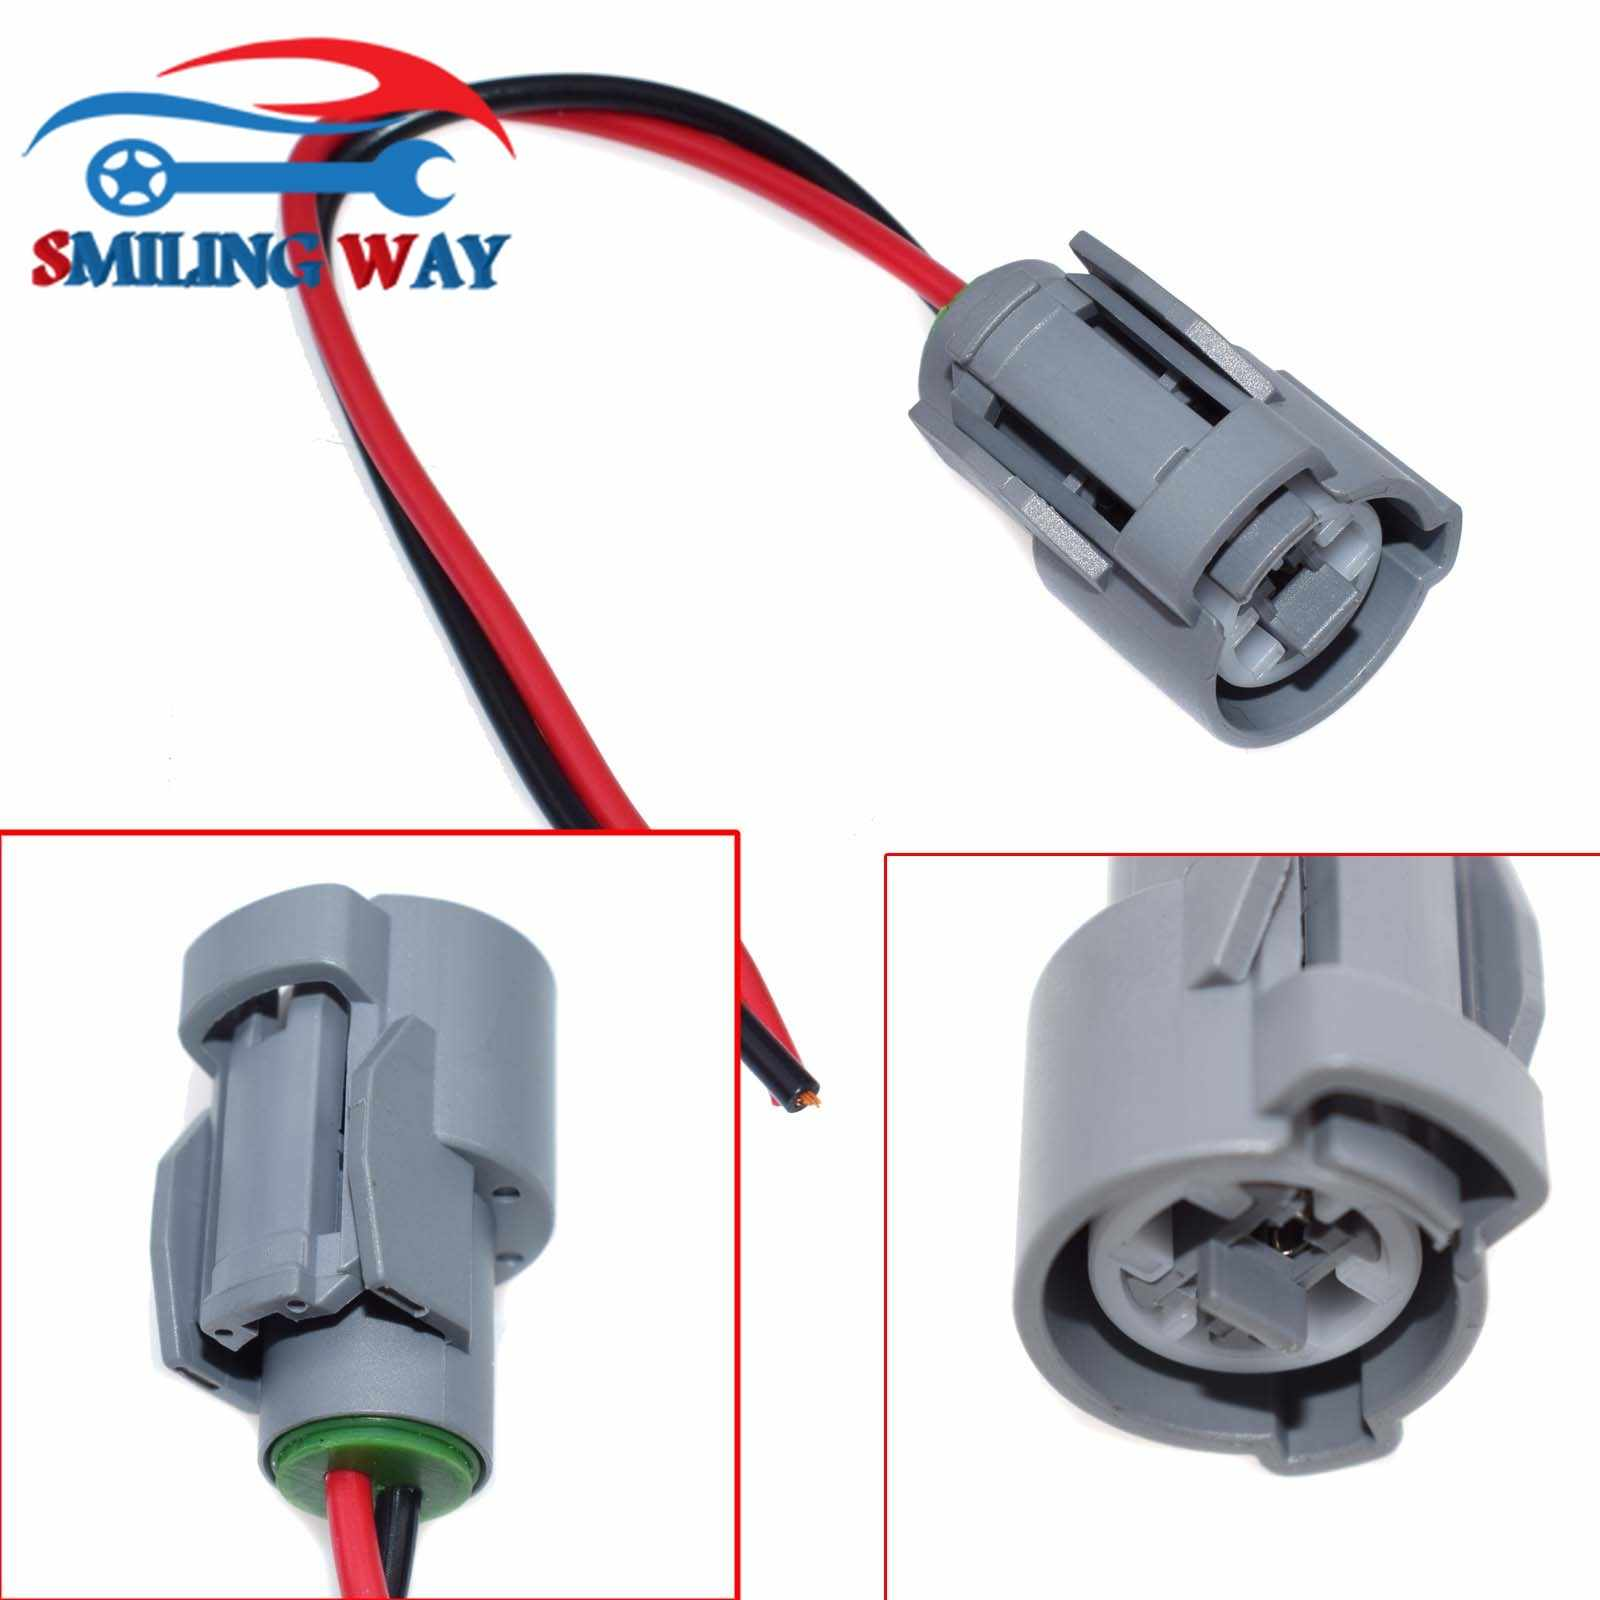 Oil Pressure Switch/ IAT ECT VTEC Sensor Connector Wire Harness Wiring  Pigtail Plug For Honda Acura Civic Element Pilot Fuel Inject. Controls &  Parts  - AliExpress